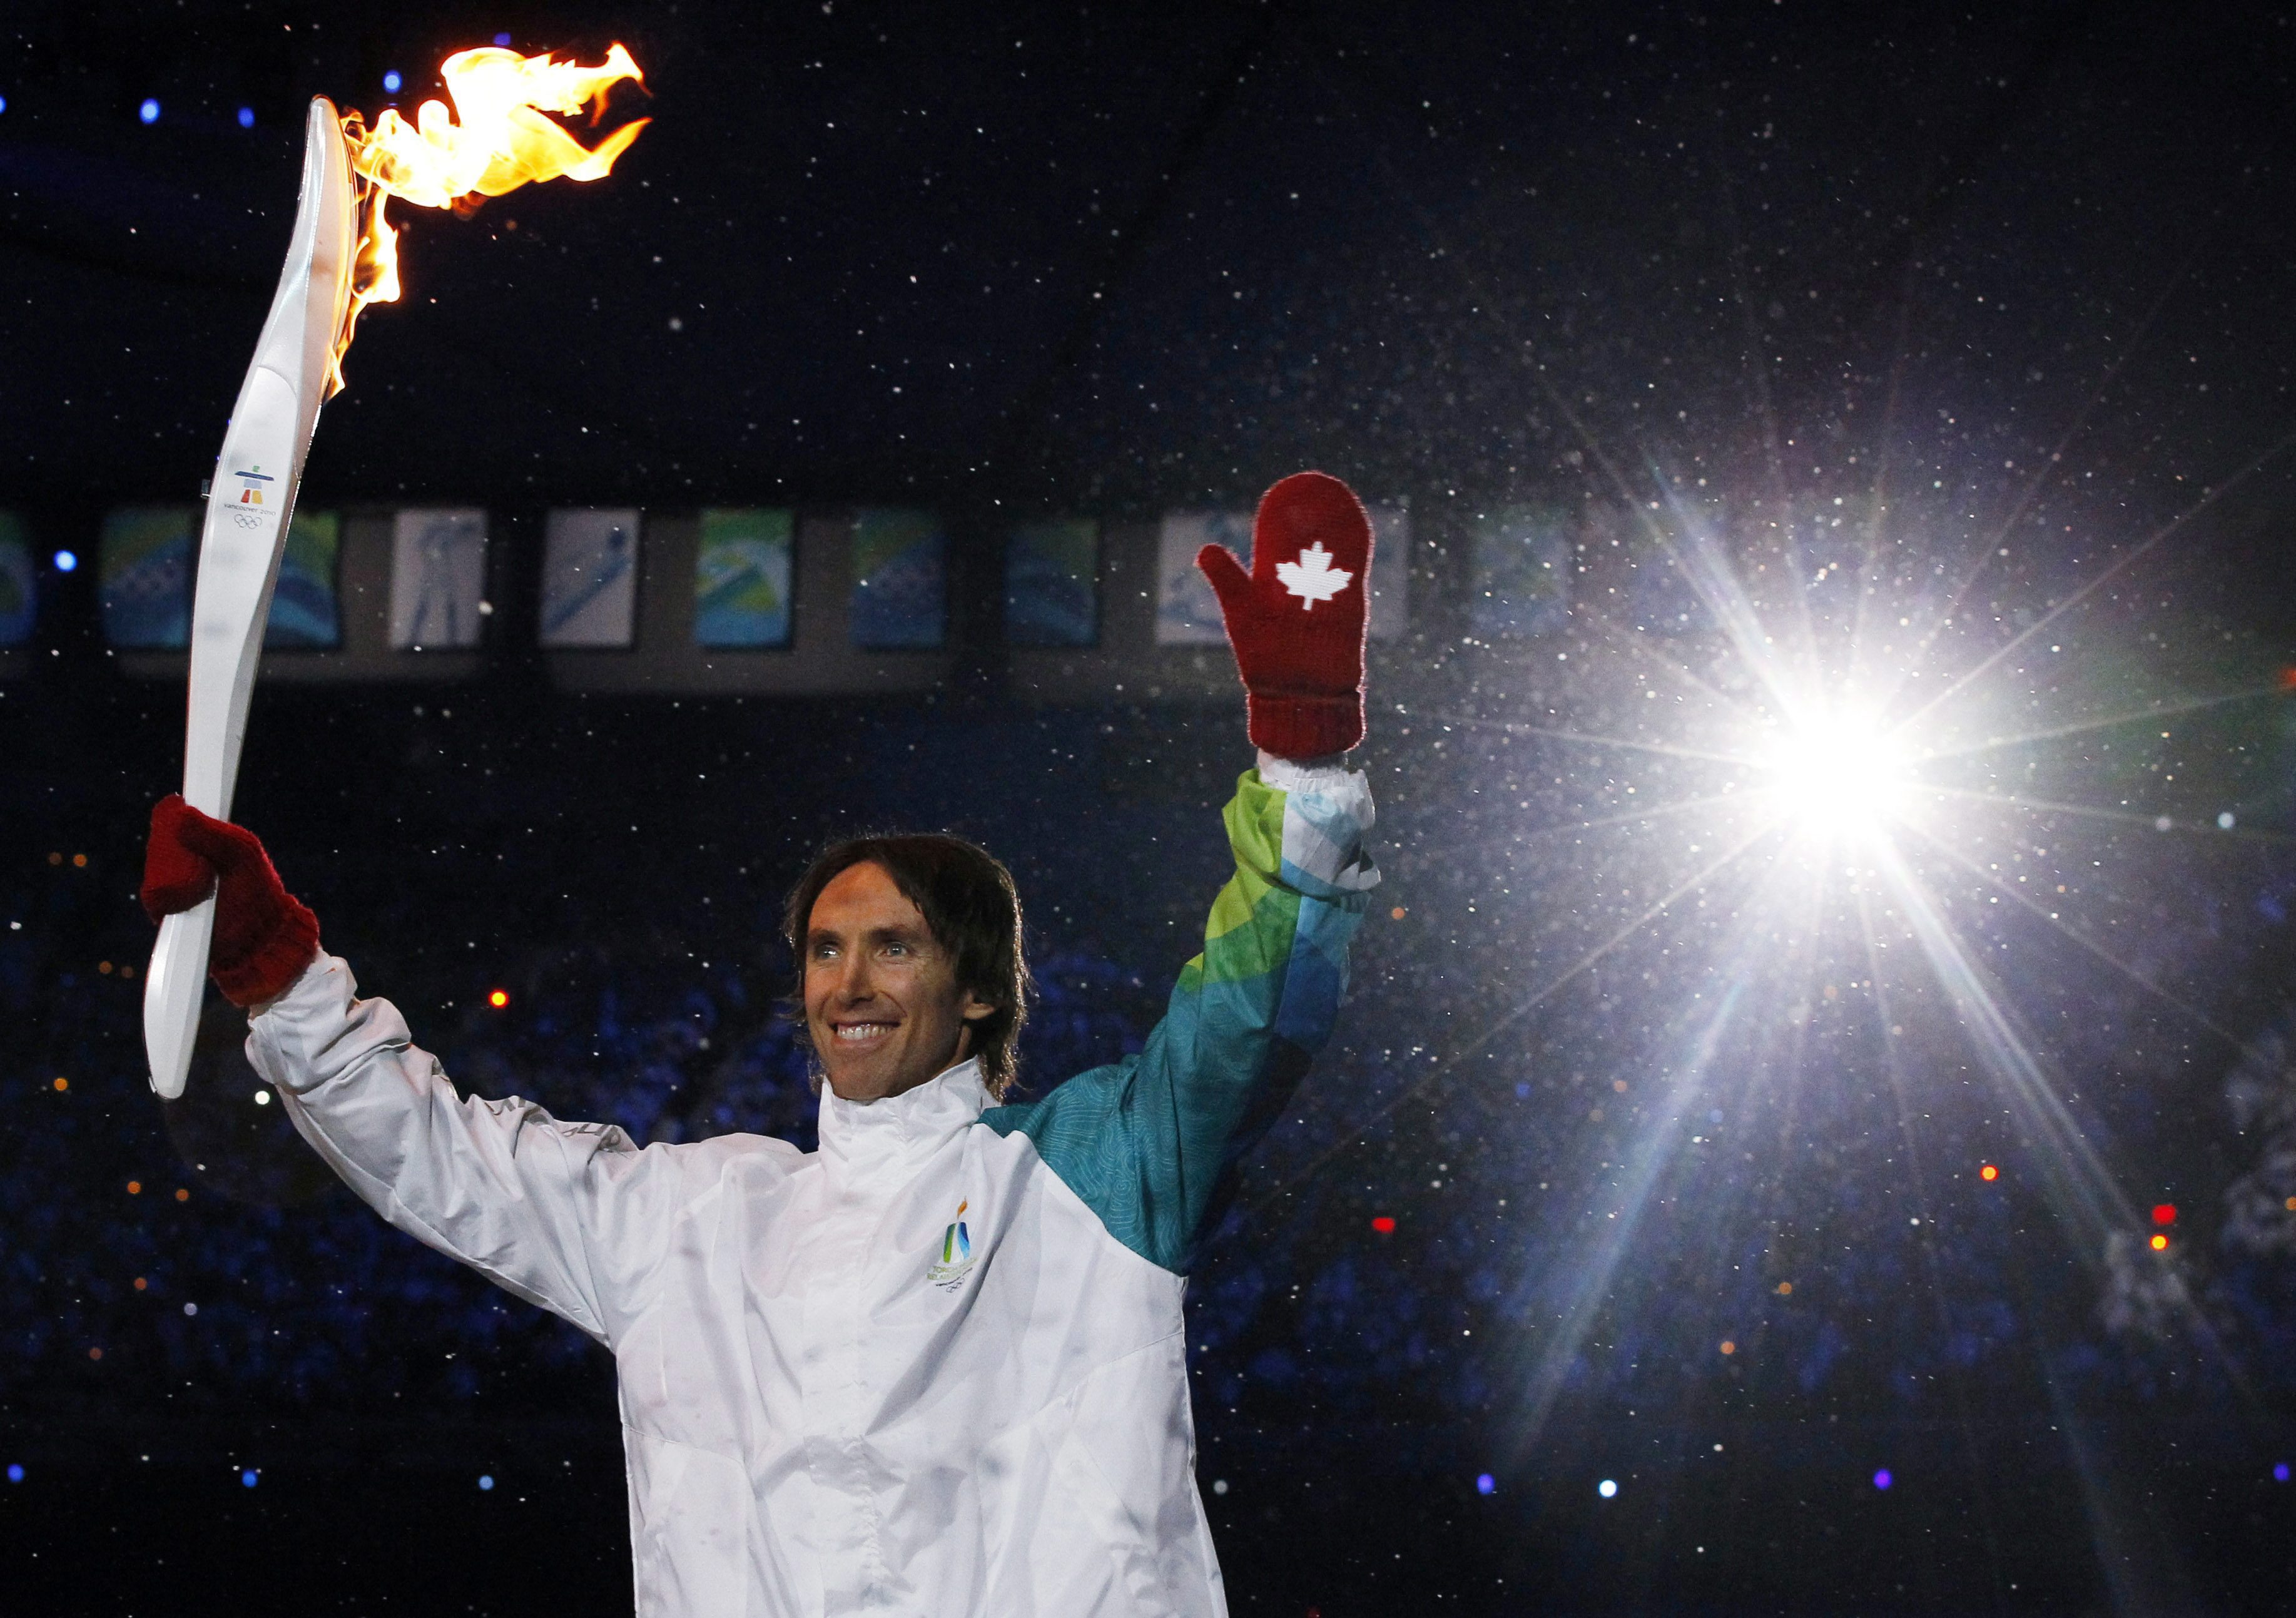 Torchbearer smiles as he waves to the crowd